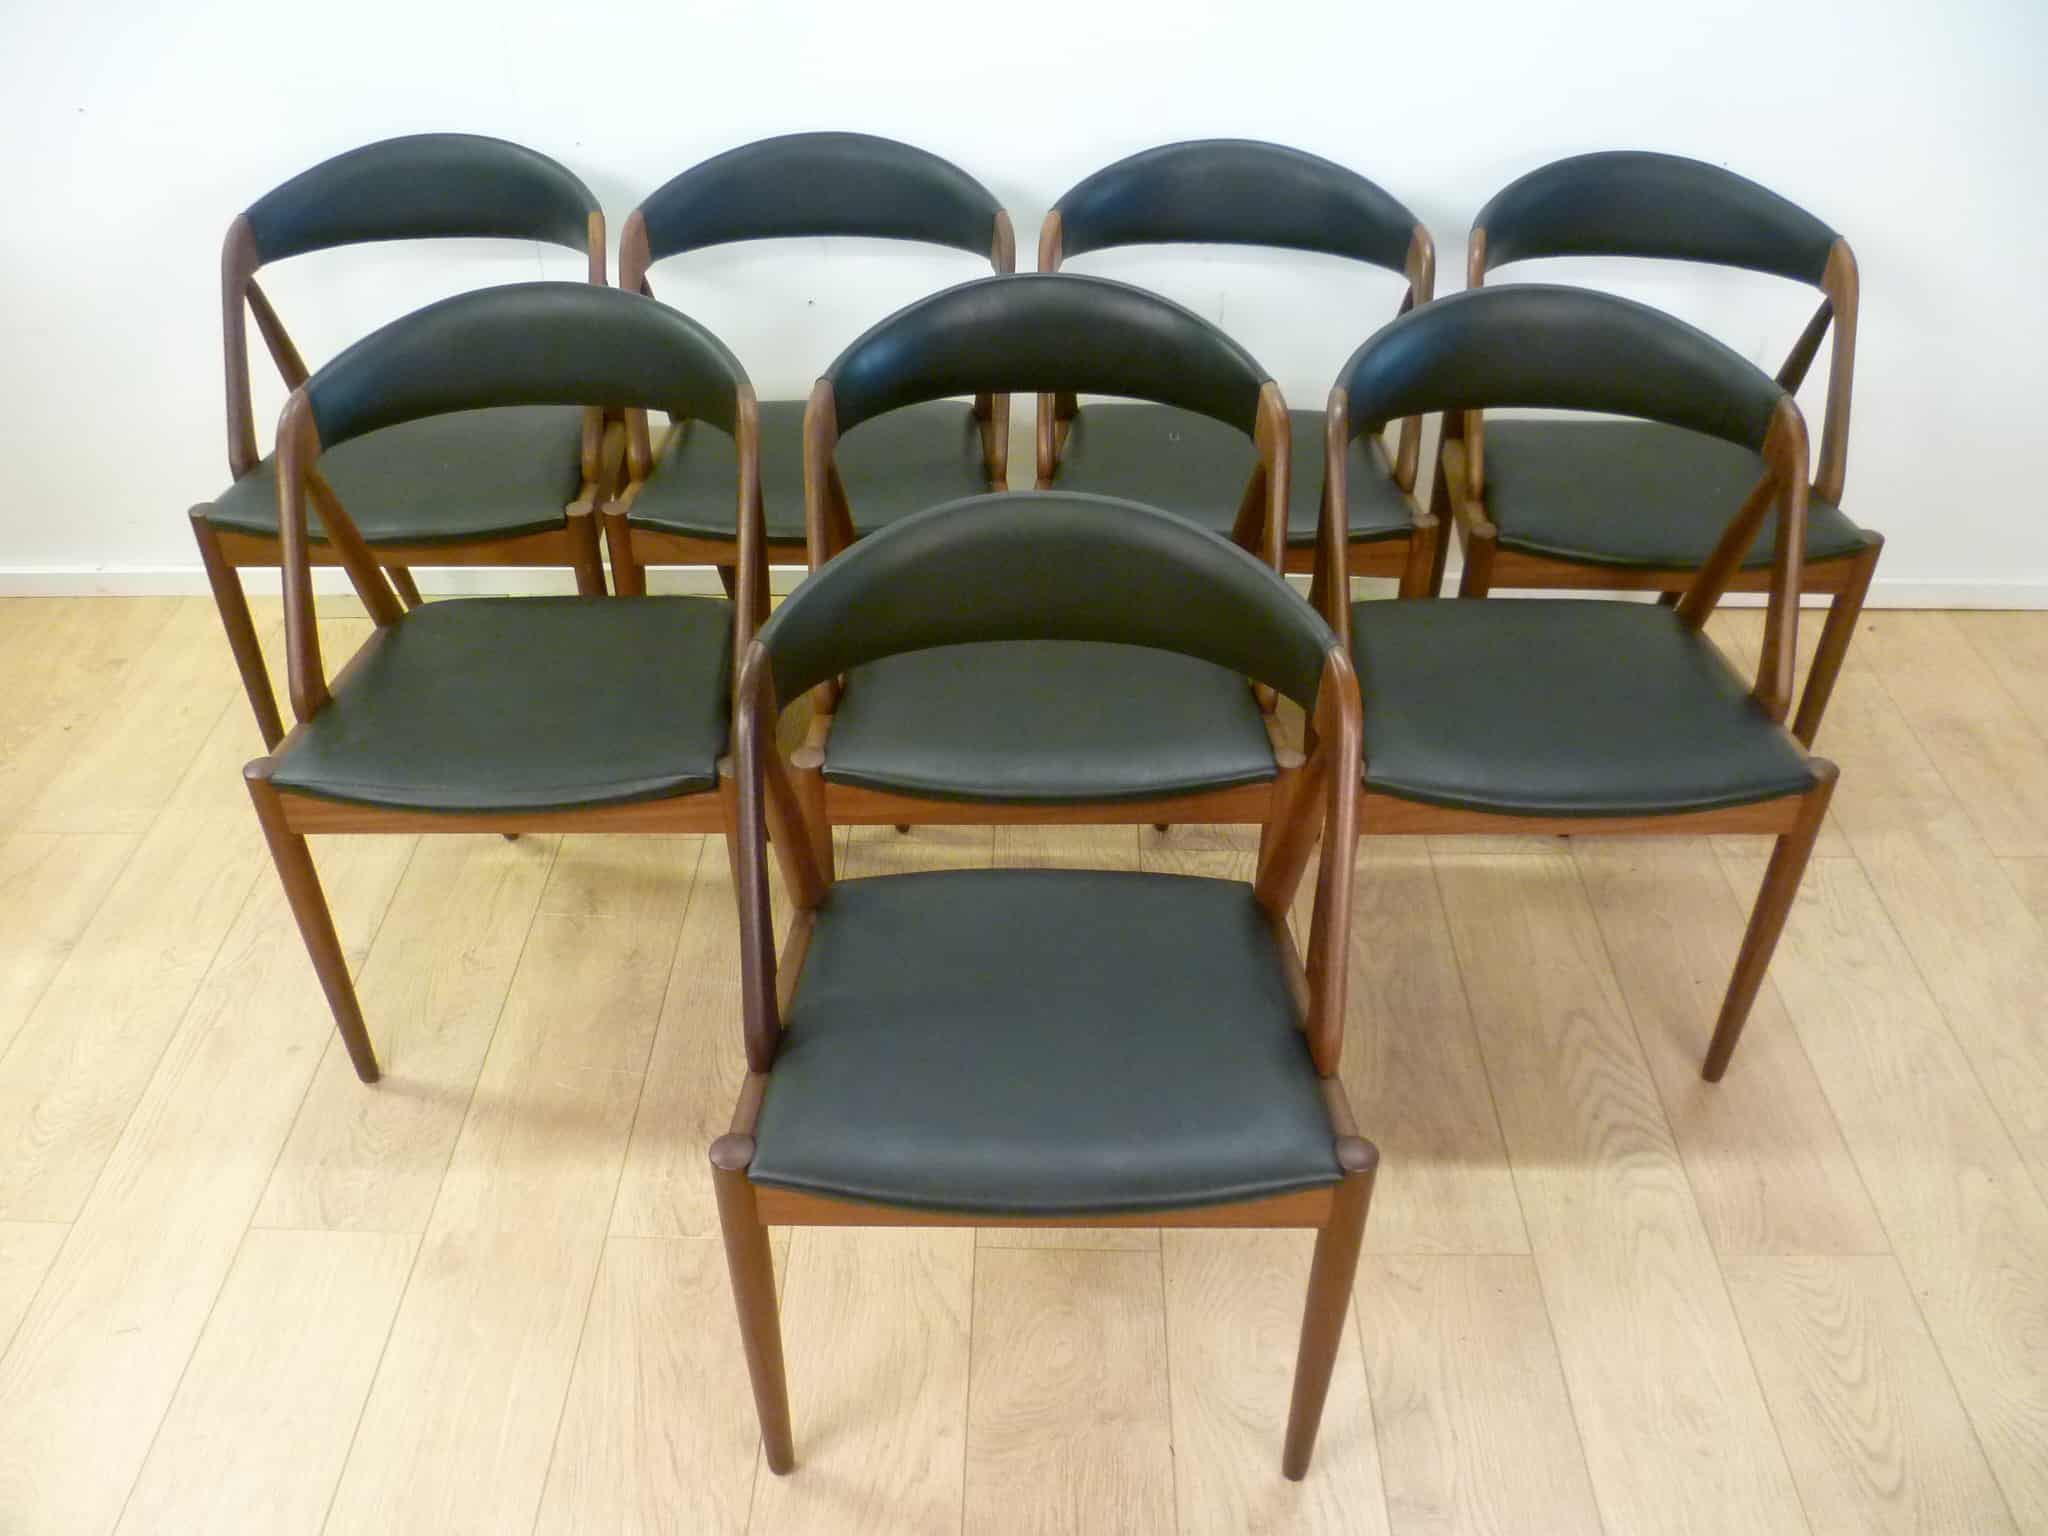 Eight Kai Kristiansen Dining Chairs Mark Parrish Mid Century Modern